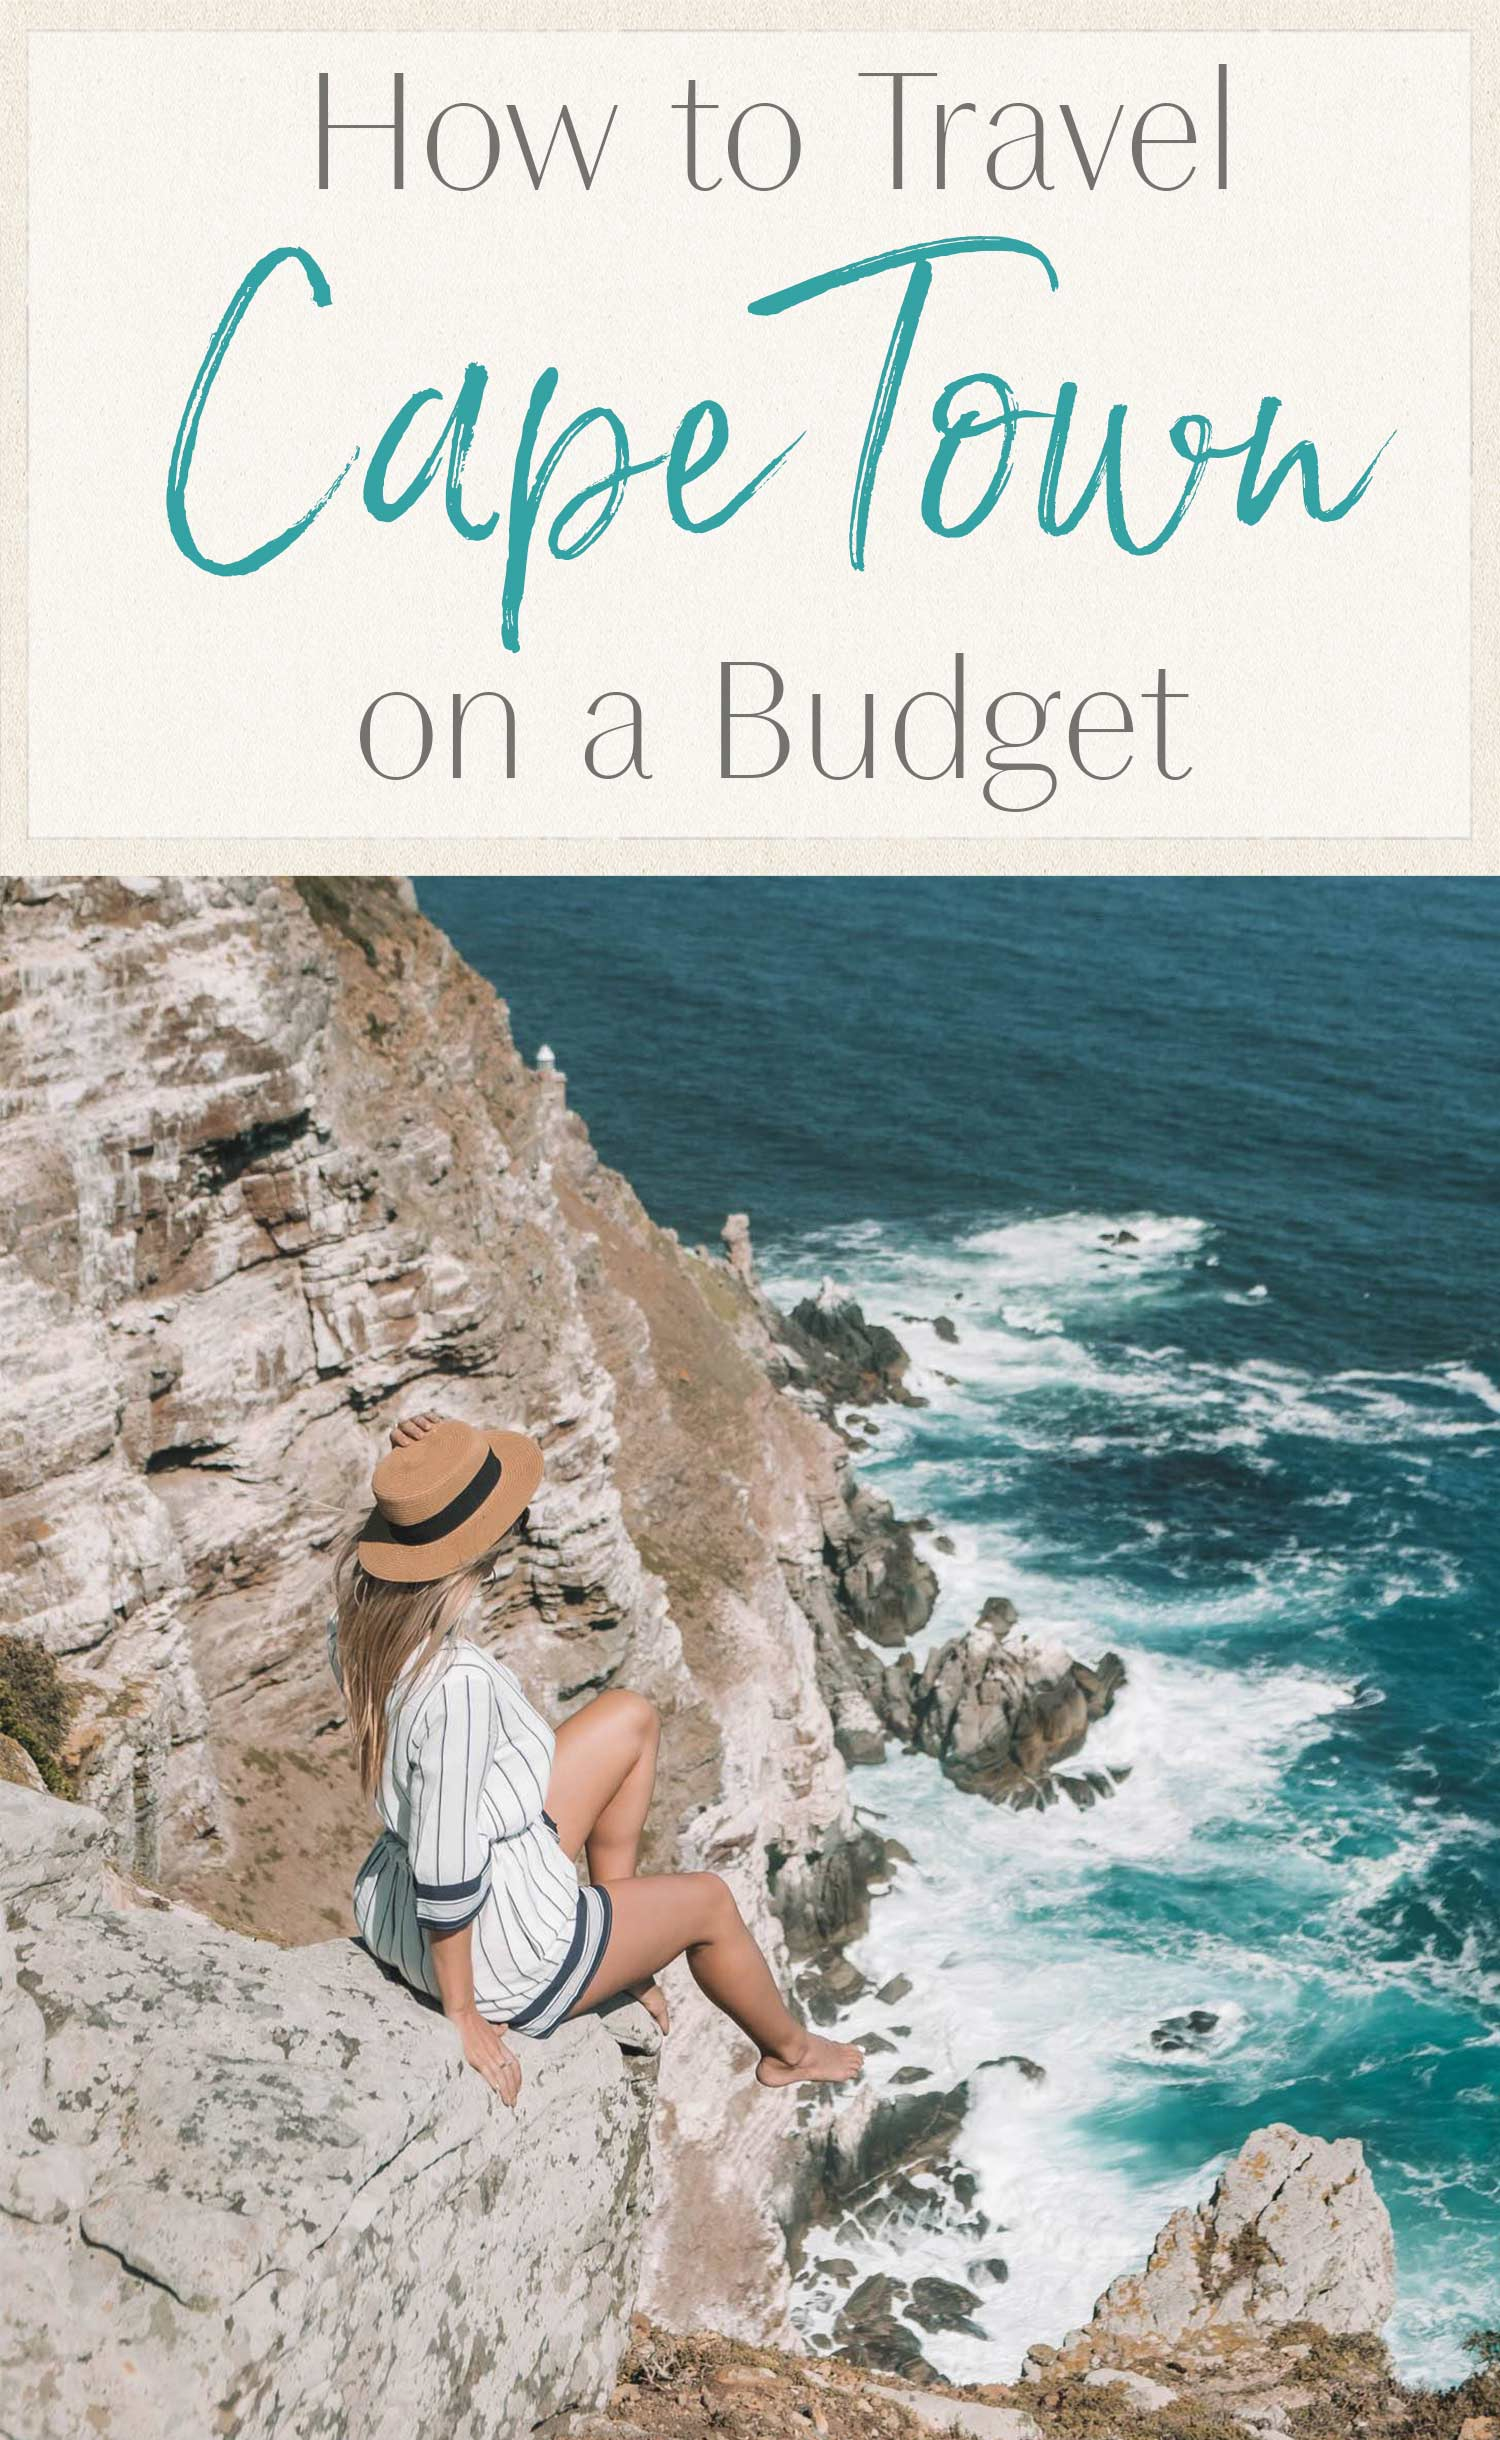 how to travel Cape Town on a budget